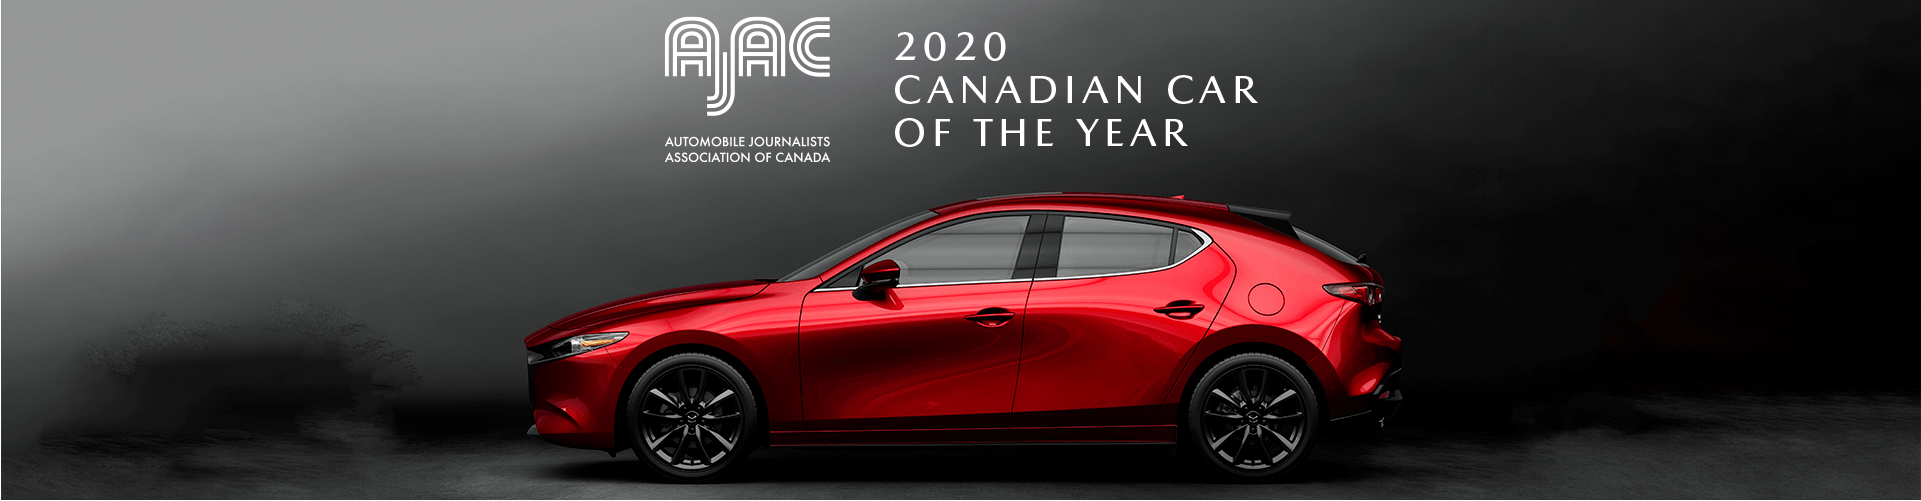 AJAC 2020 Canadian Car of the Year